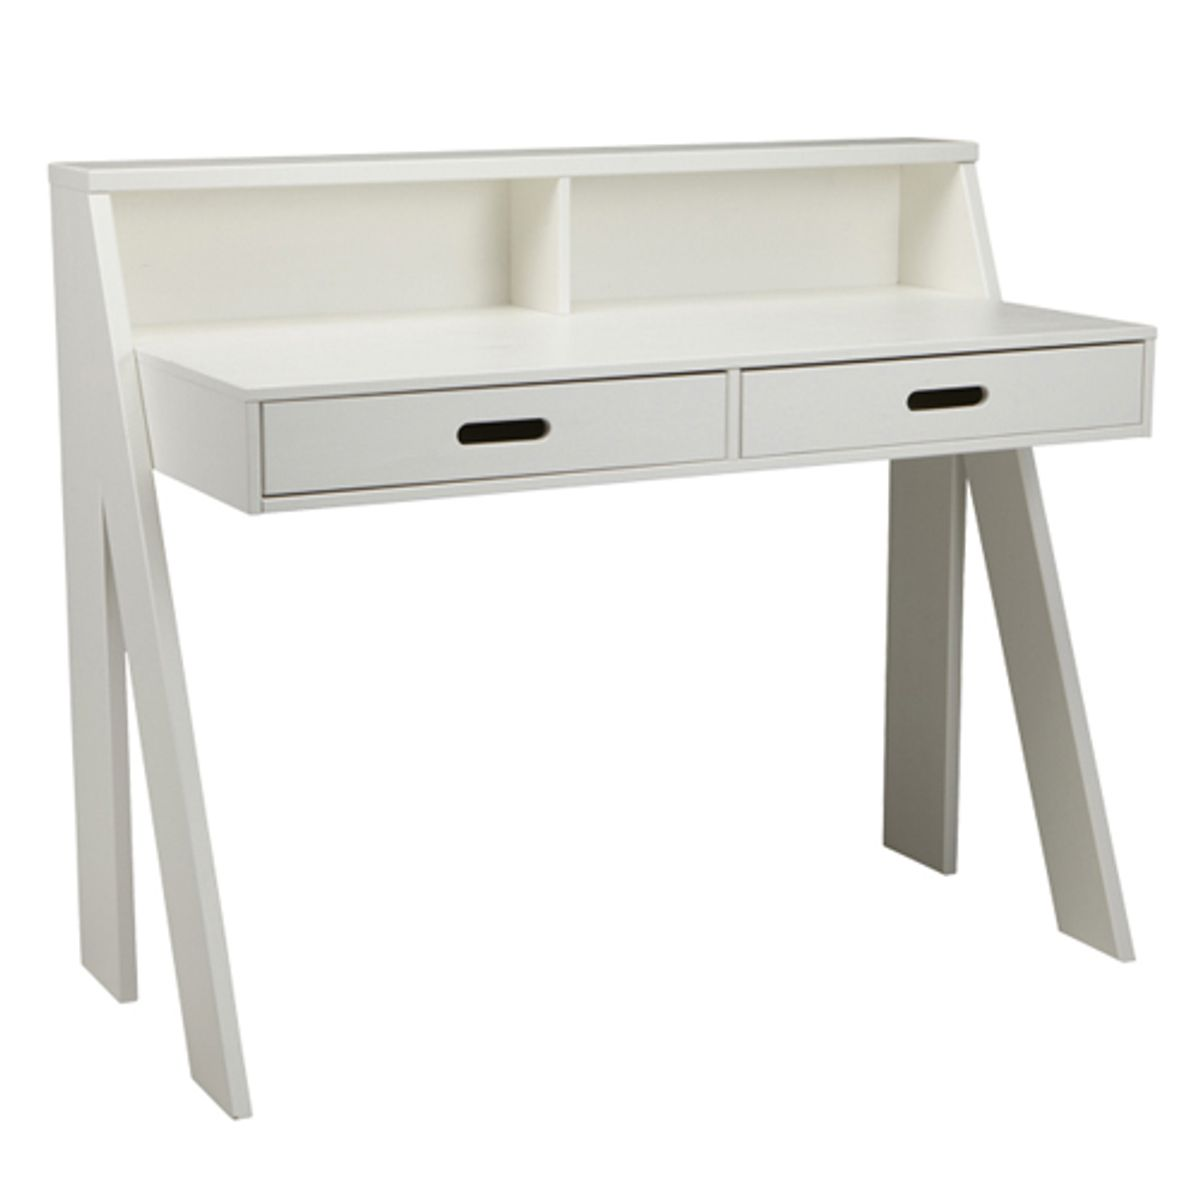 bureau junior en pin massif blanc 2 tiroir max fabrication europ enne decoclico. Black Bedroom Furniture Sets. Home Design Ideas